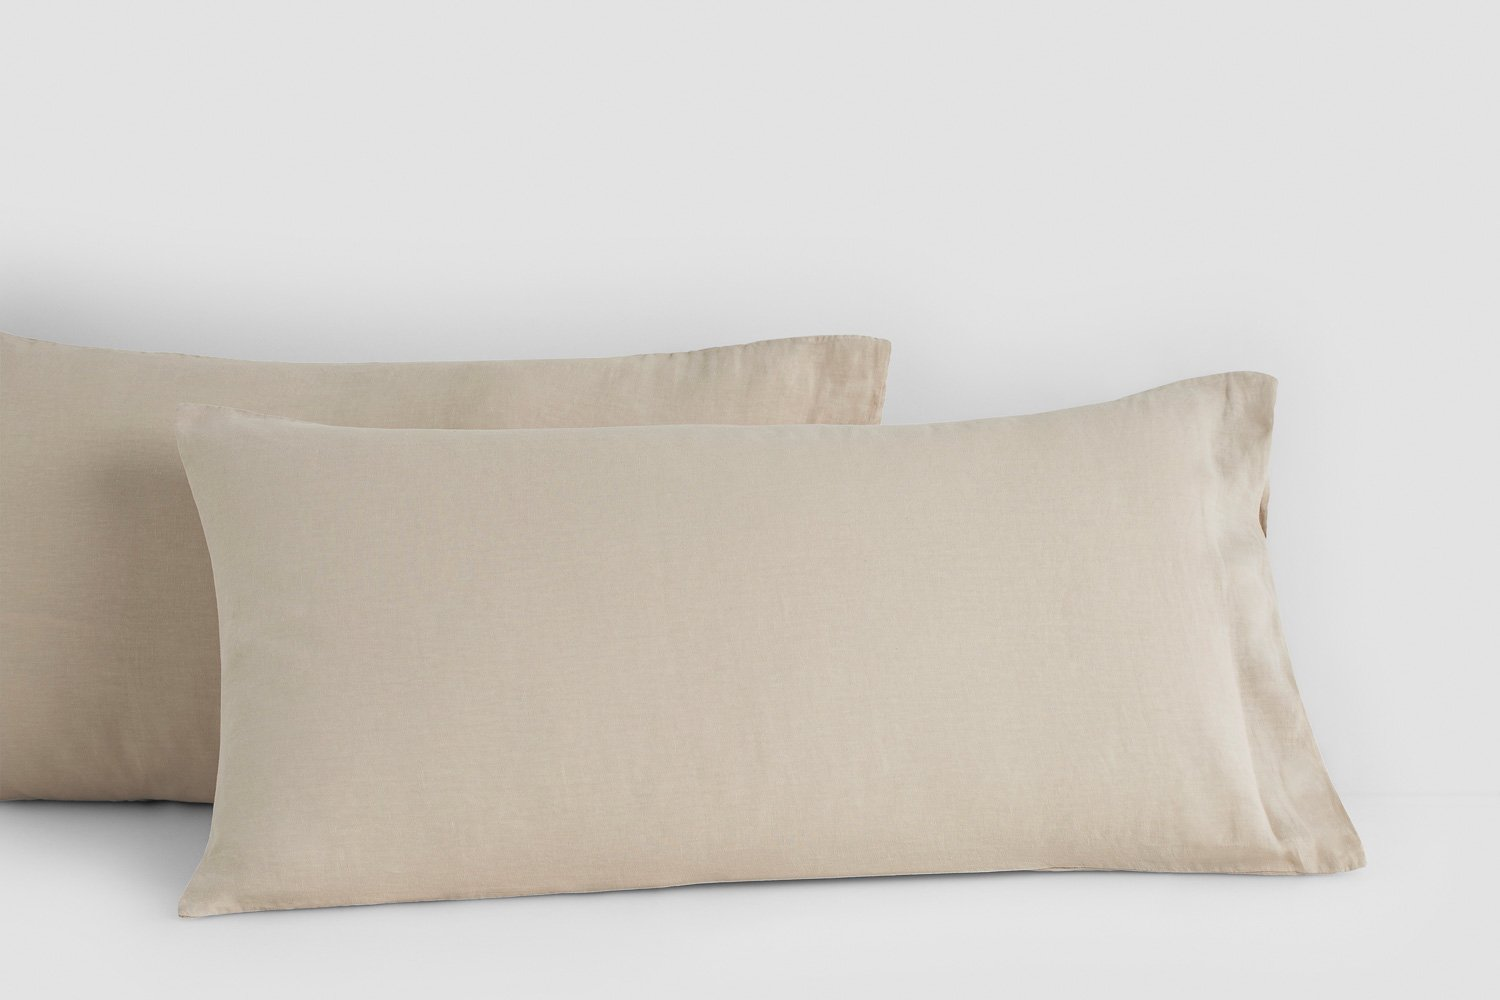 linen king pillow cases in stone